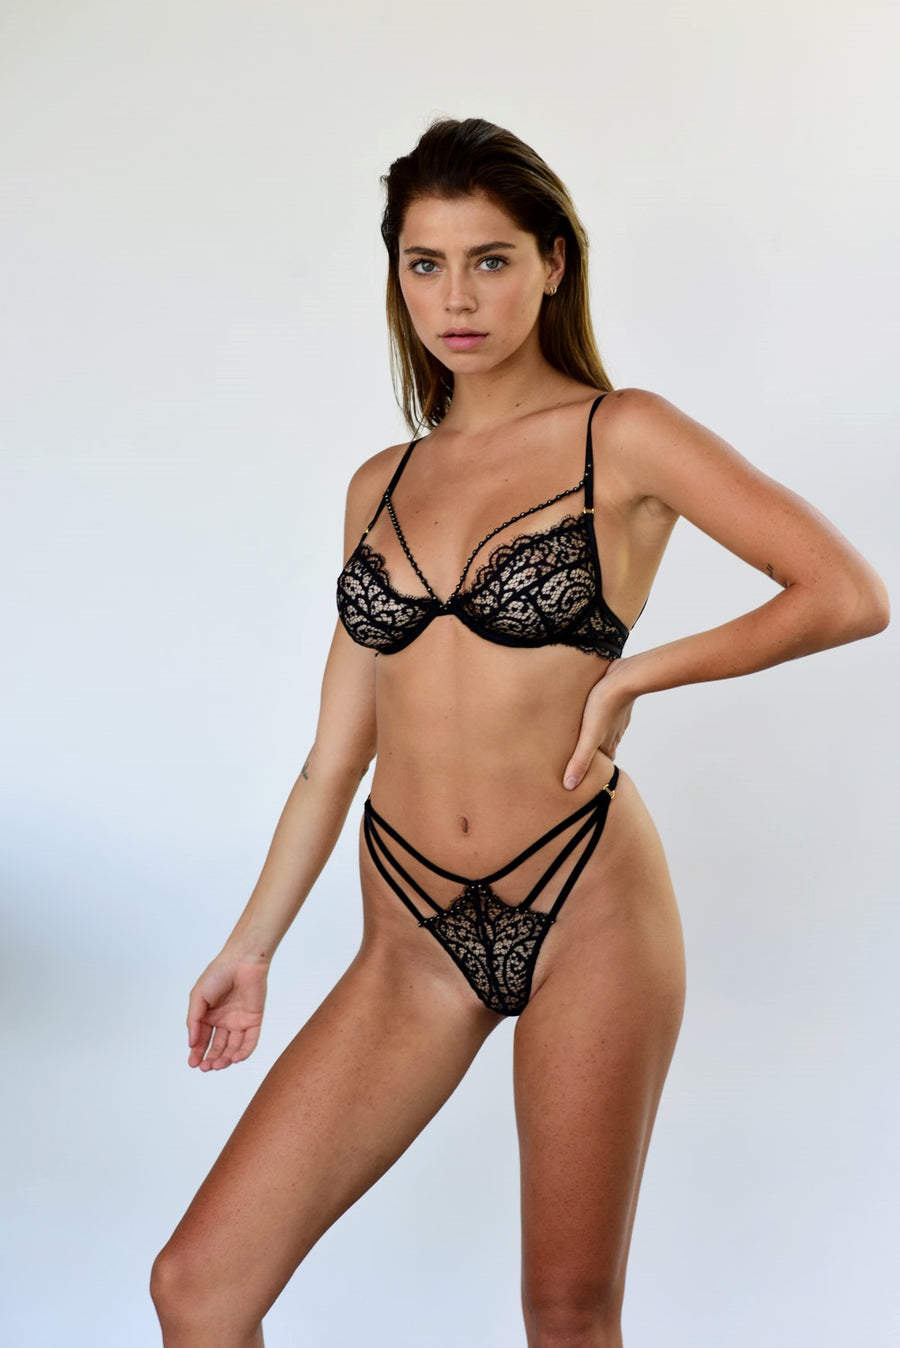 Chance Jewellery Bra